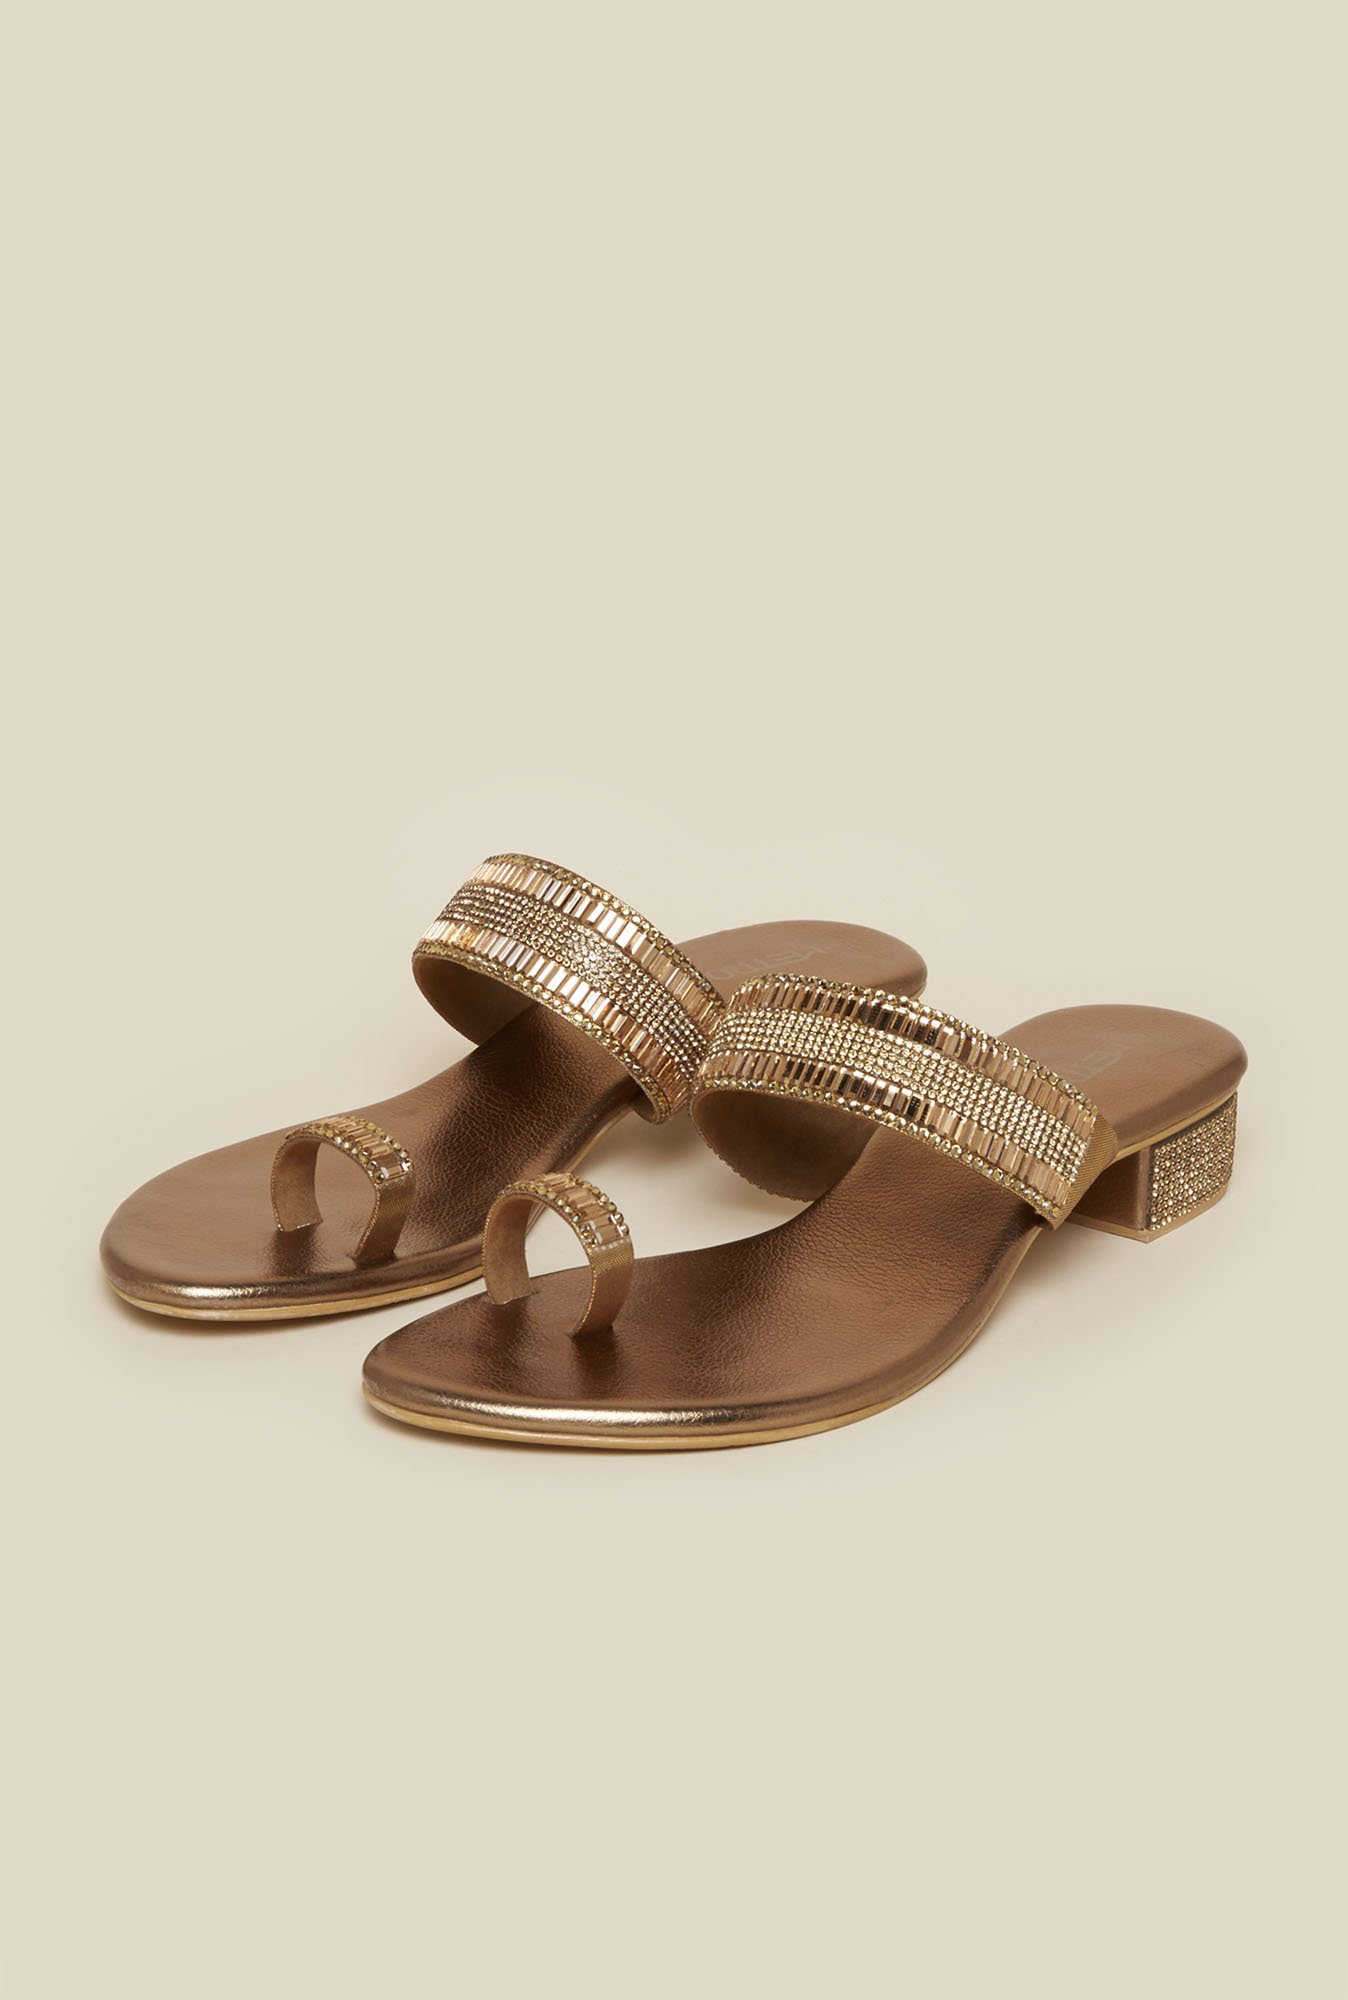 Metro Antique Gold Toe Ring Block Sandal